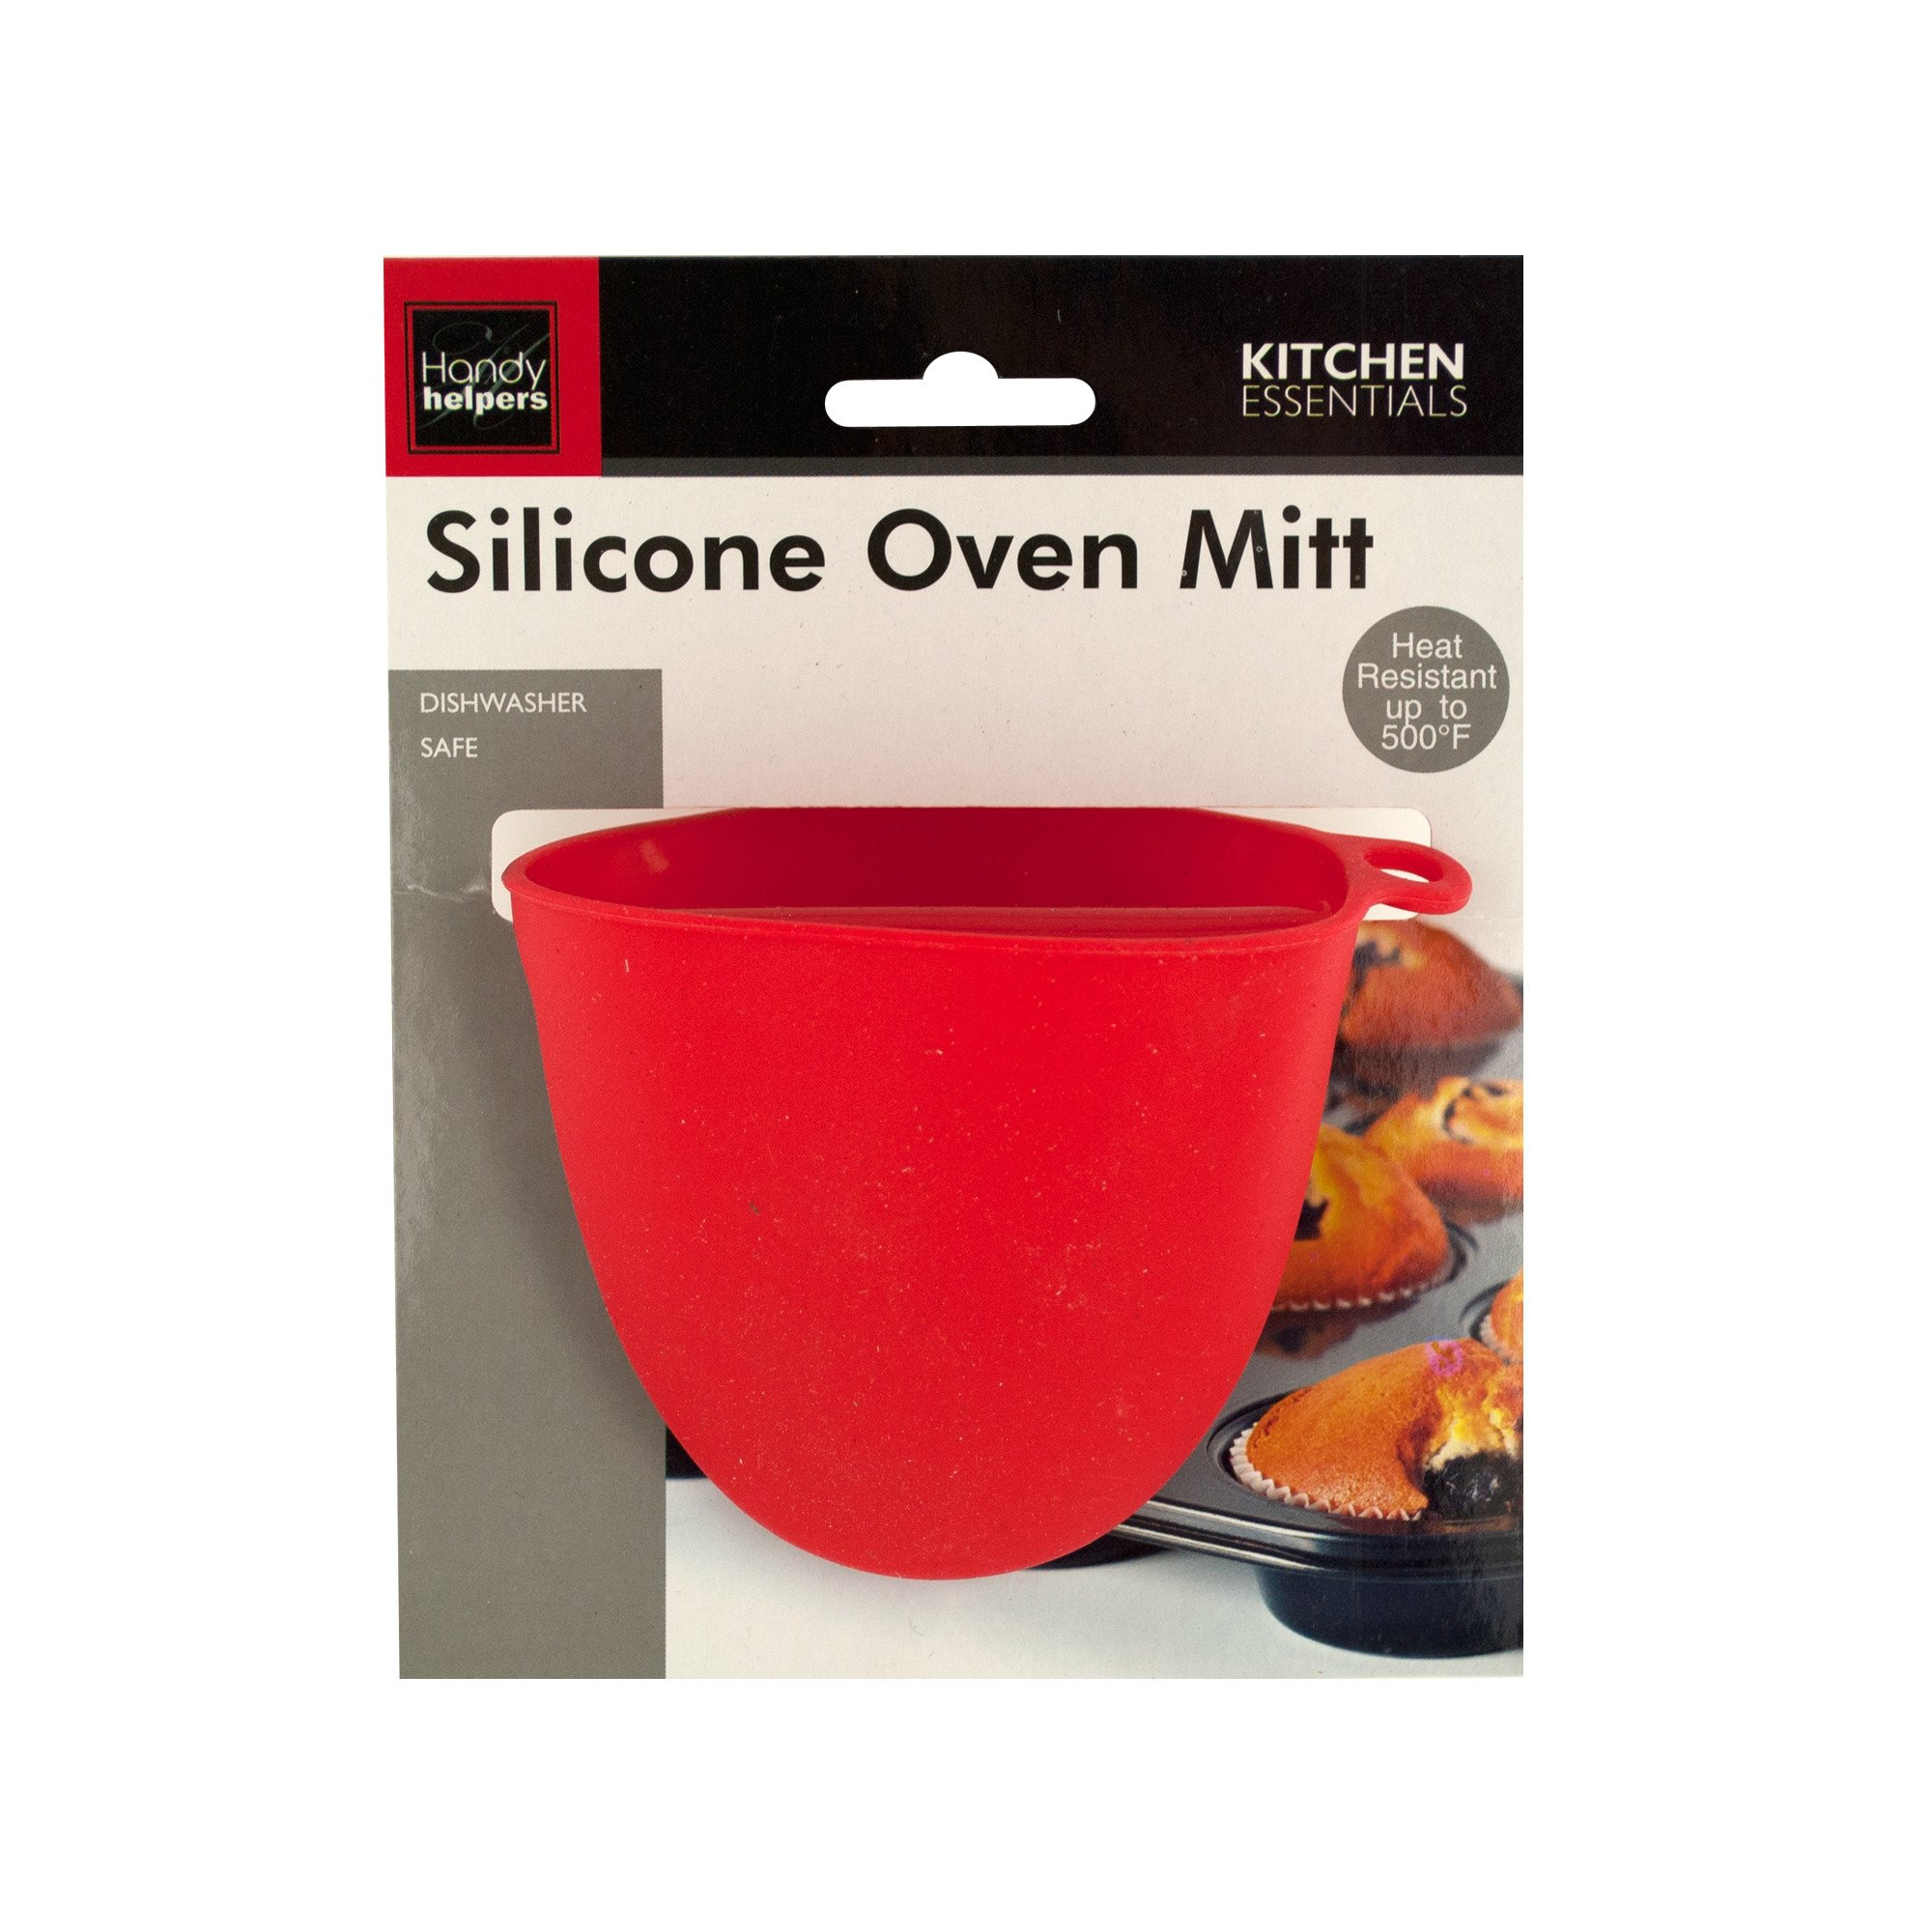 123-Wholesale - Set of 30 Silicone Oven Mitt - Kitchen & Dining Hot Pads & Trivets